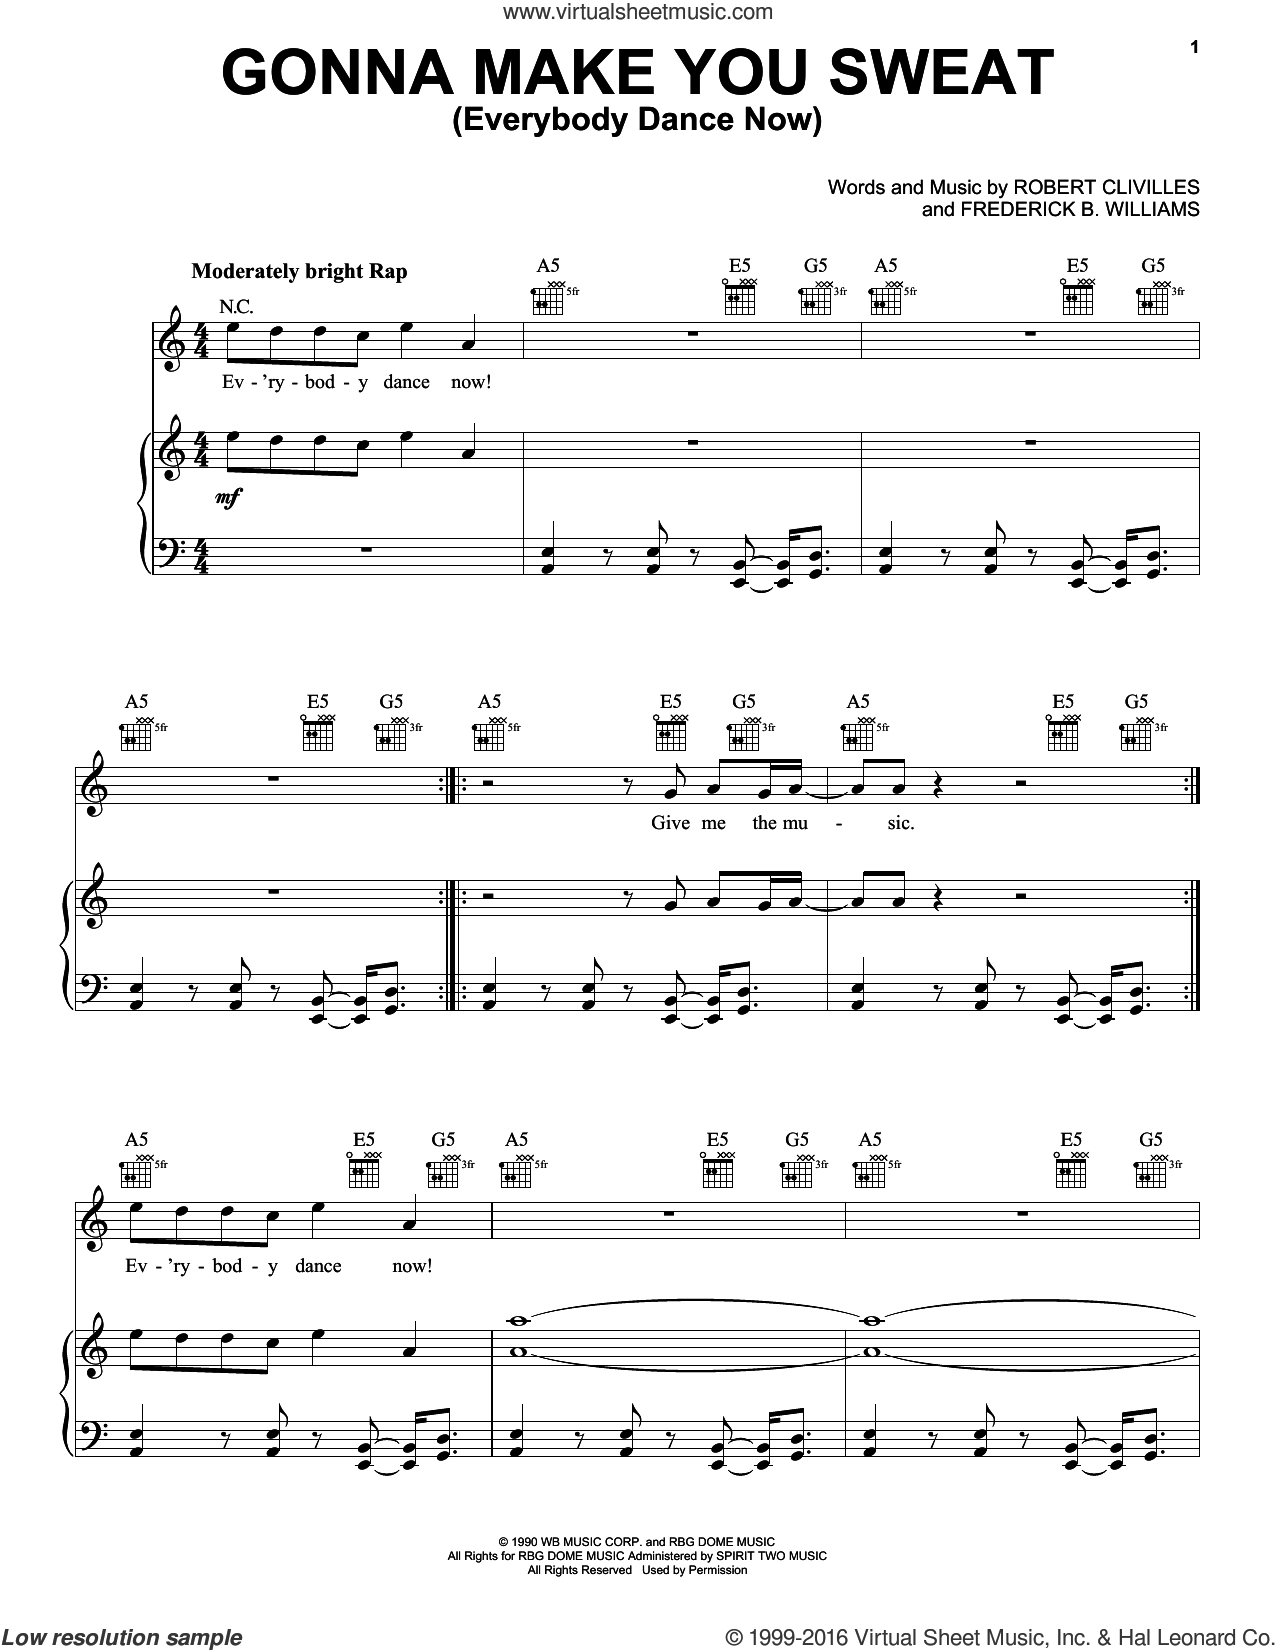 Gonna Make You Sweat (Everybody Dance Now) sheet music for voice, piano or guitar by C+C Music Factory, Frederick B. Williams and Robert Clivilles, intermediate. Score Image Preview.